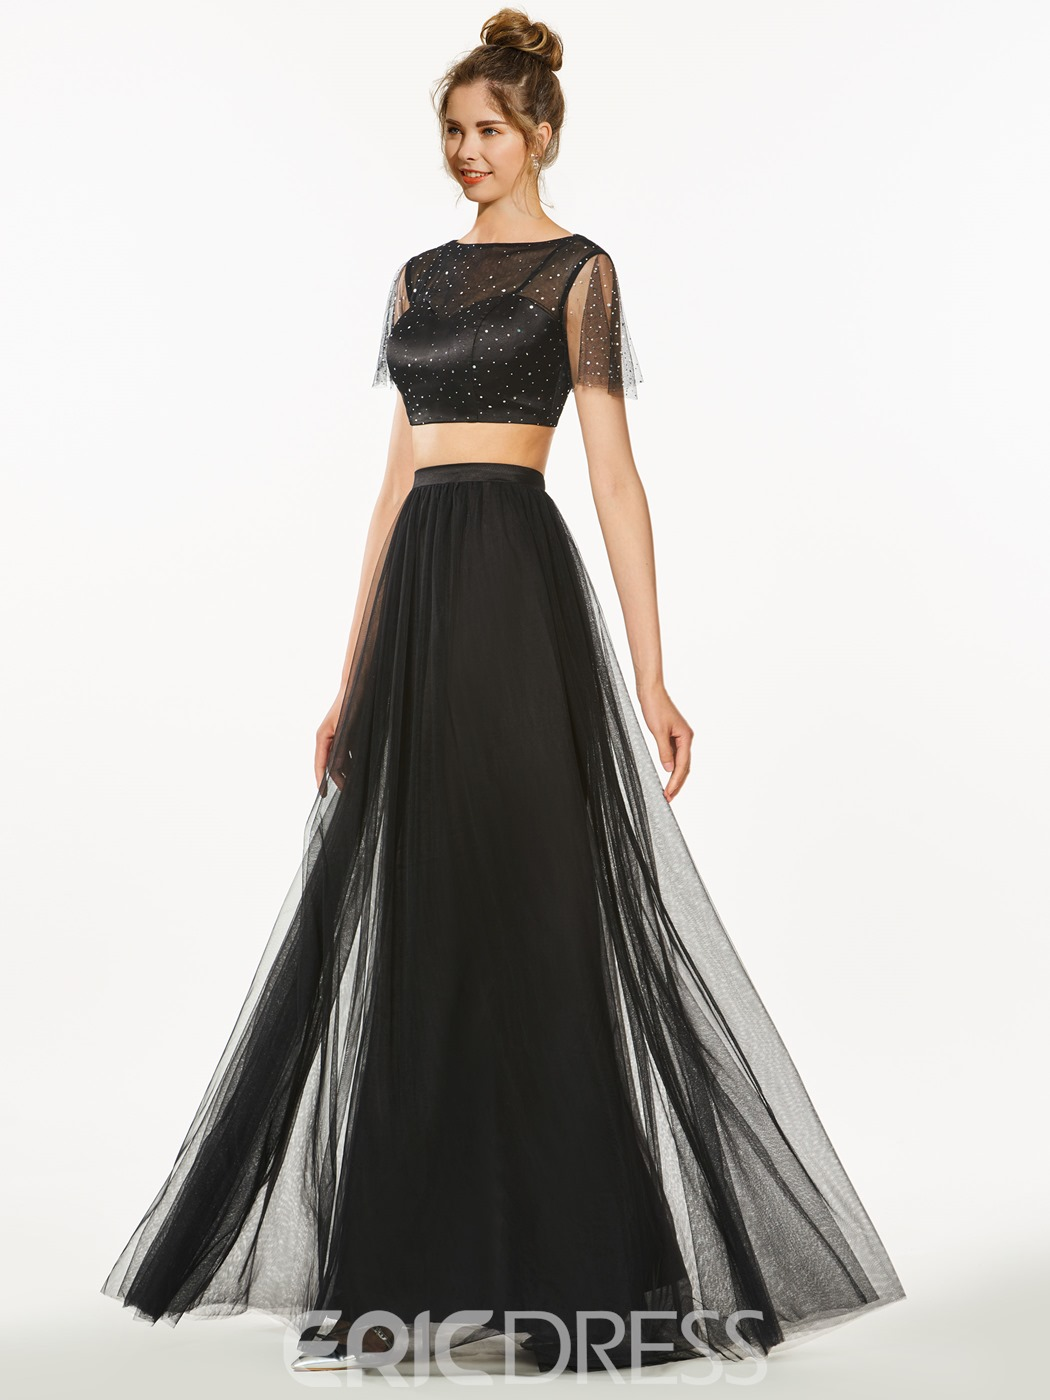 Ericdress A-Line Two Pieces Bateau Short Sleeves Sequins Prom Dress